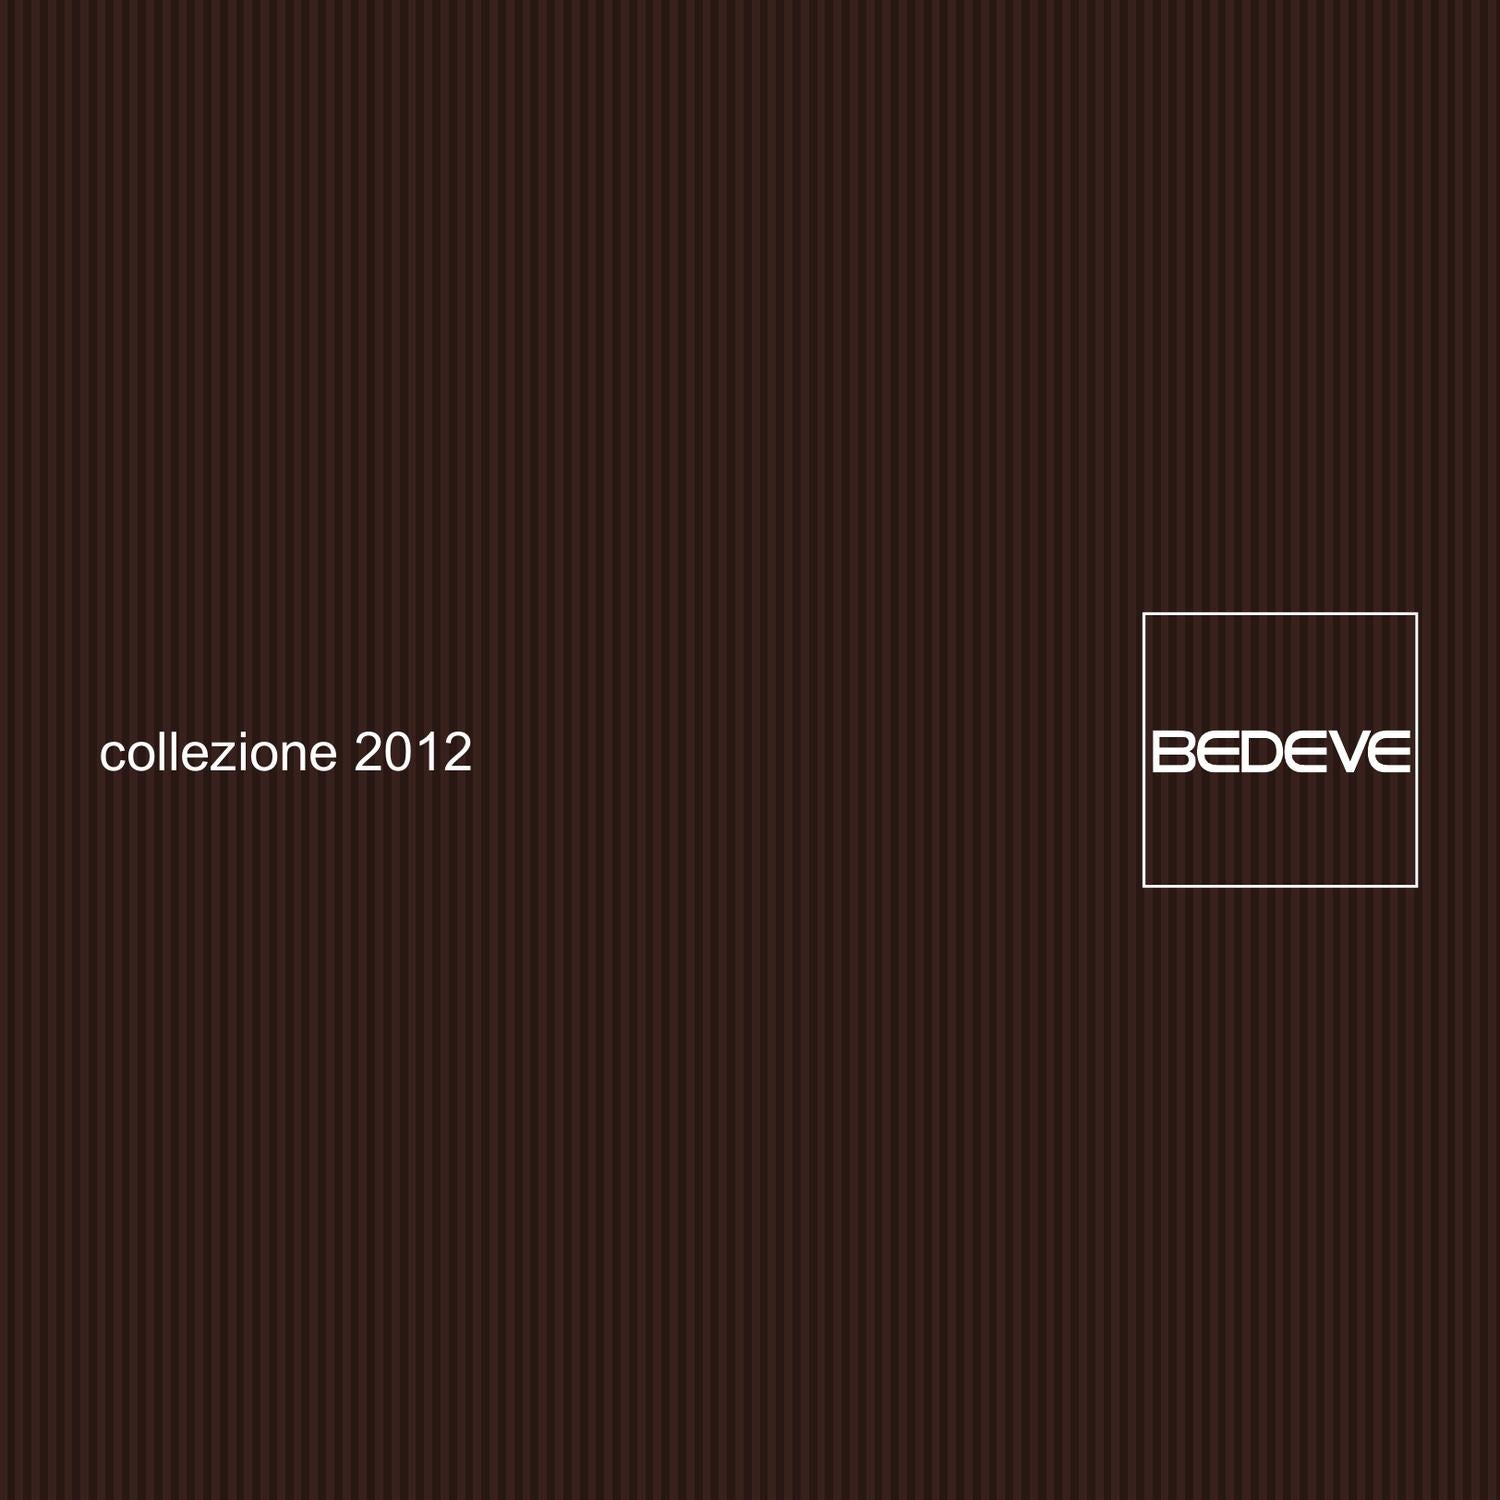 Bedeve Salotti Lissone.Bedeve Canape Transformable News 2012 Diffusipro By